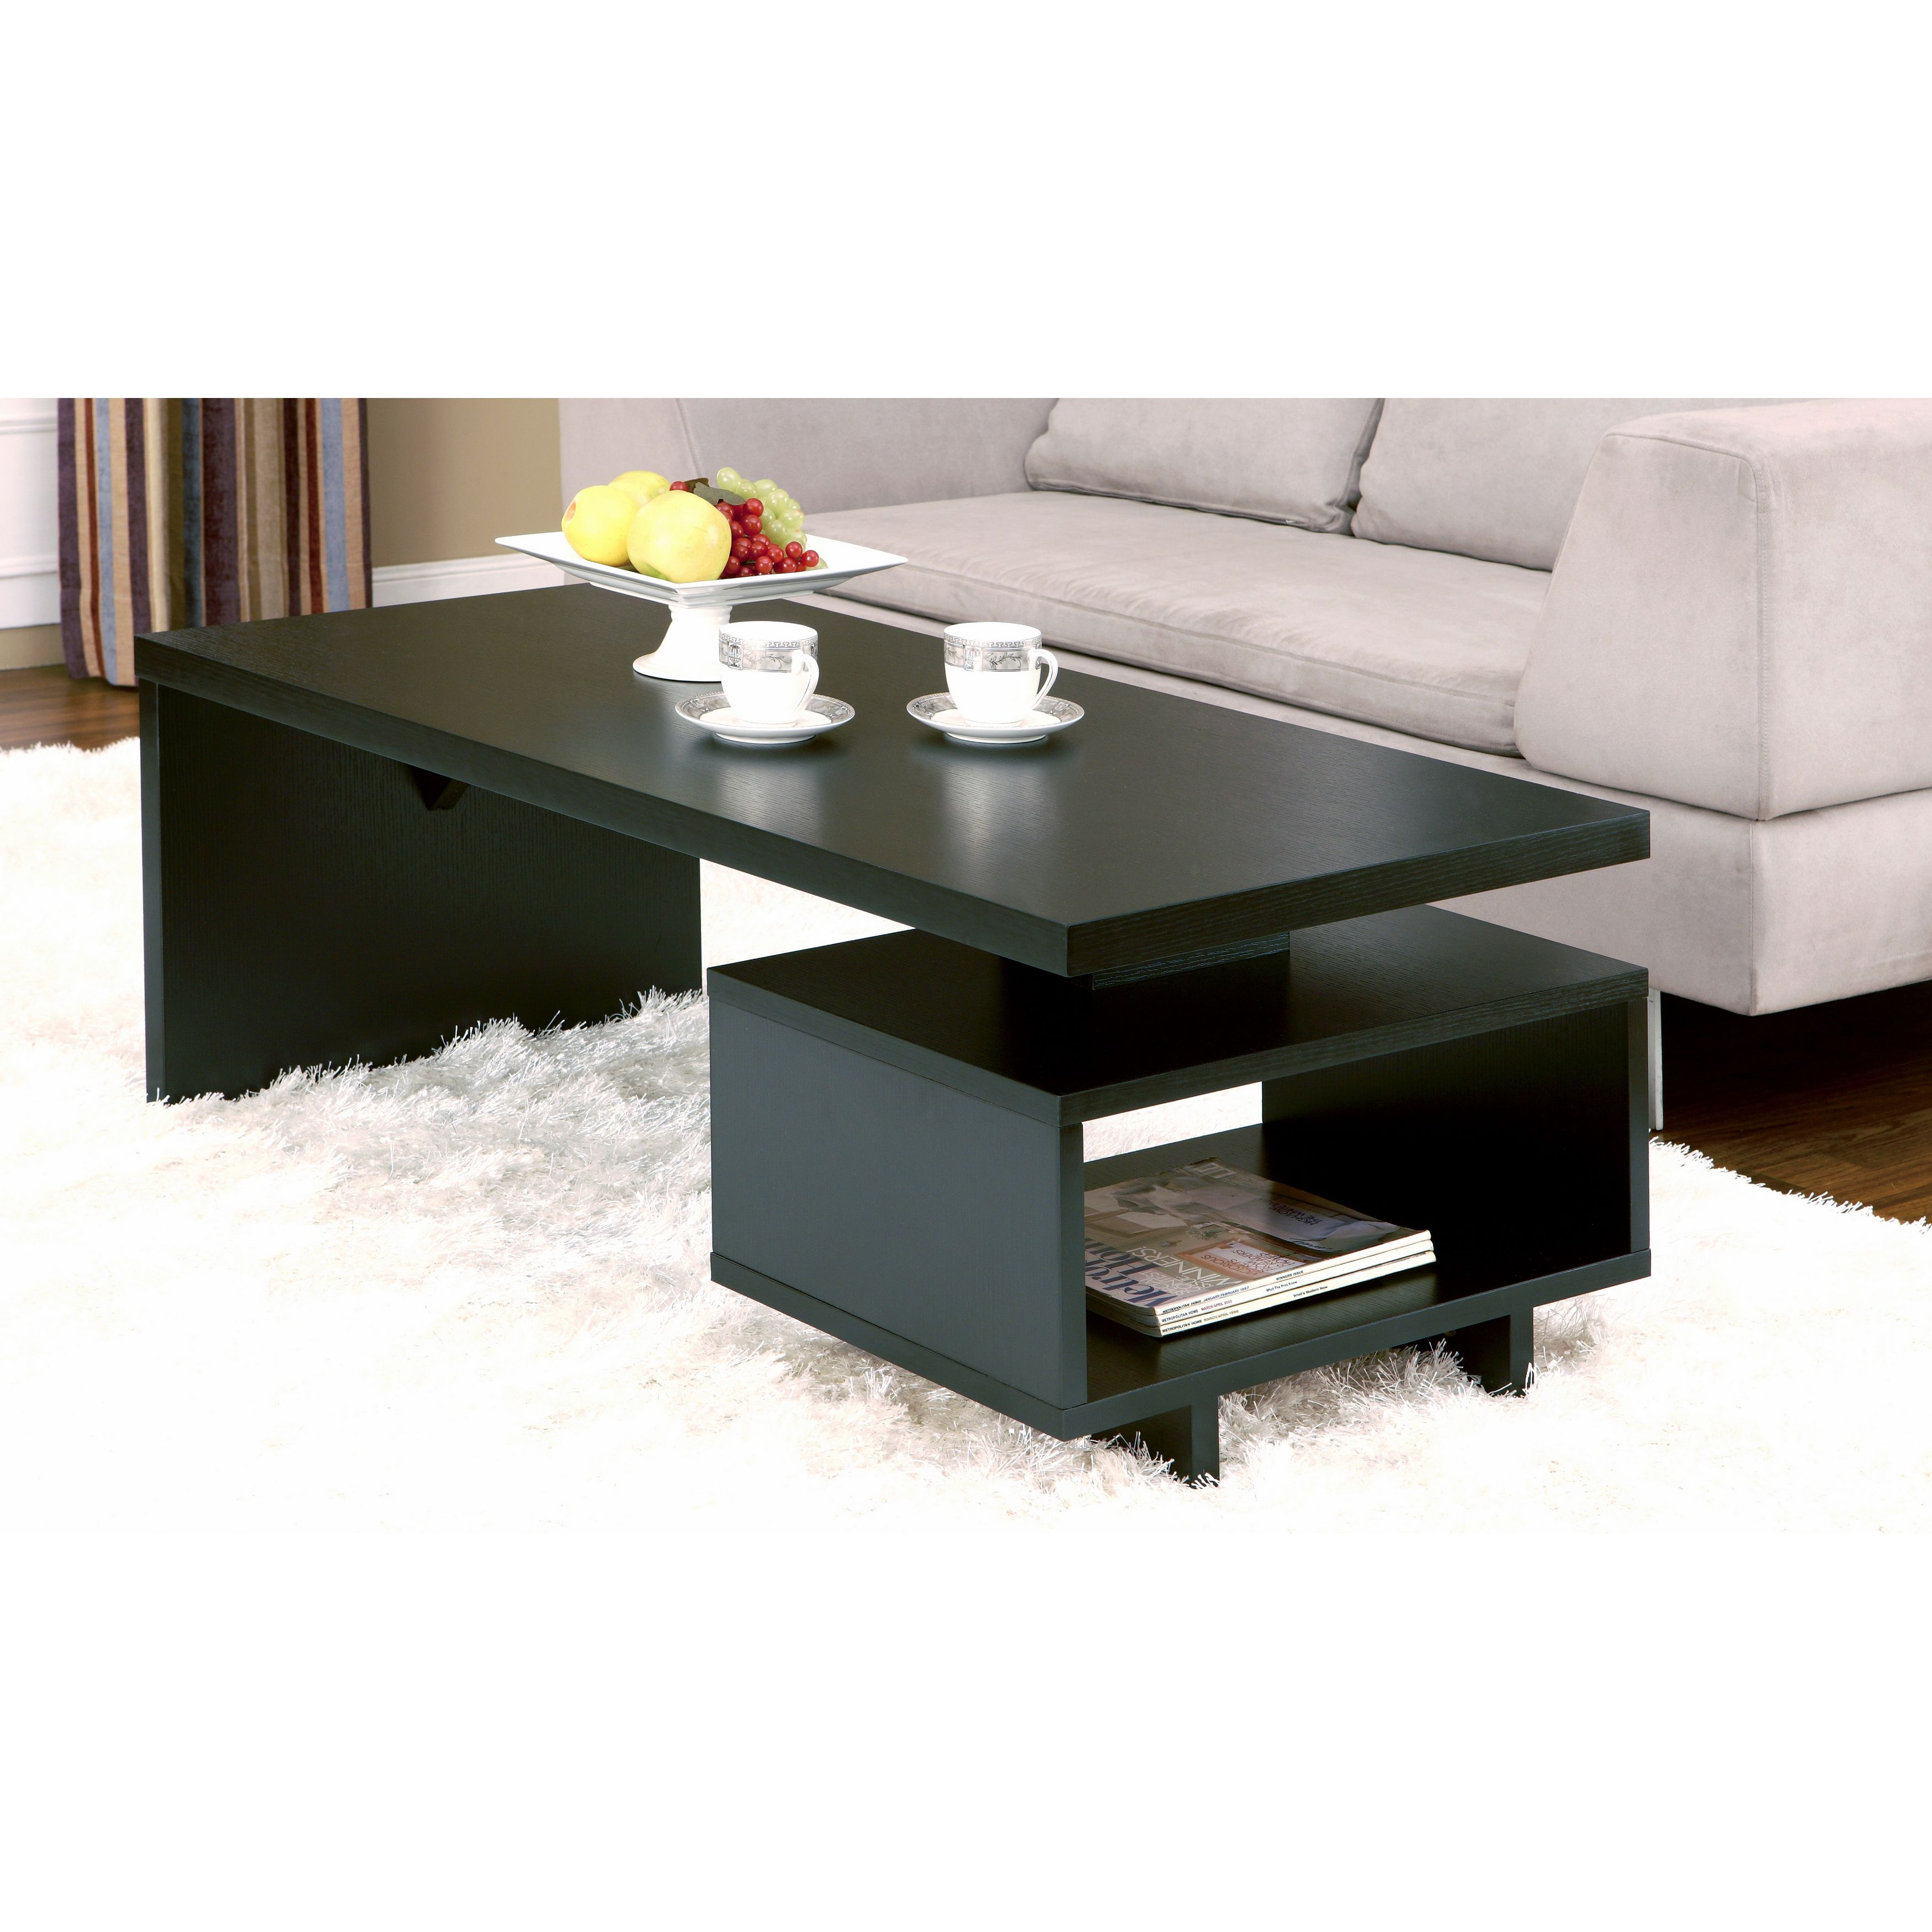 Overstock Com Online Shopping Bedding Furniture Electronics Jewelry Clothing More Coffee Table Modern Sofa Table Sofa Table Decor